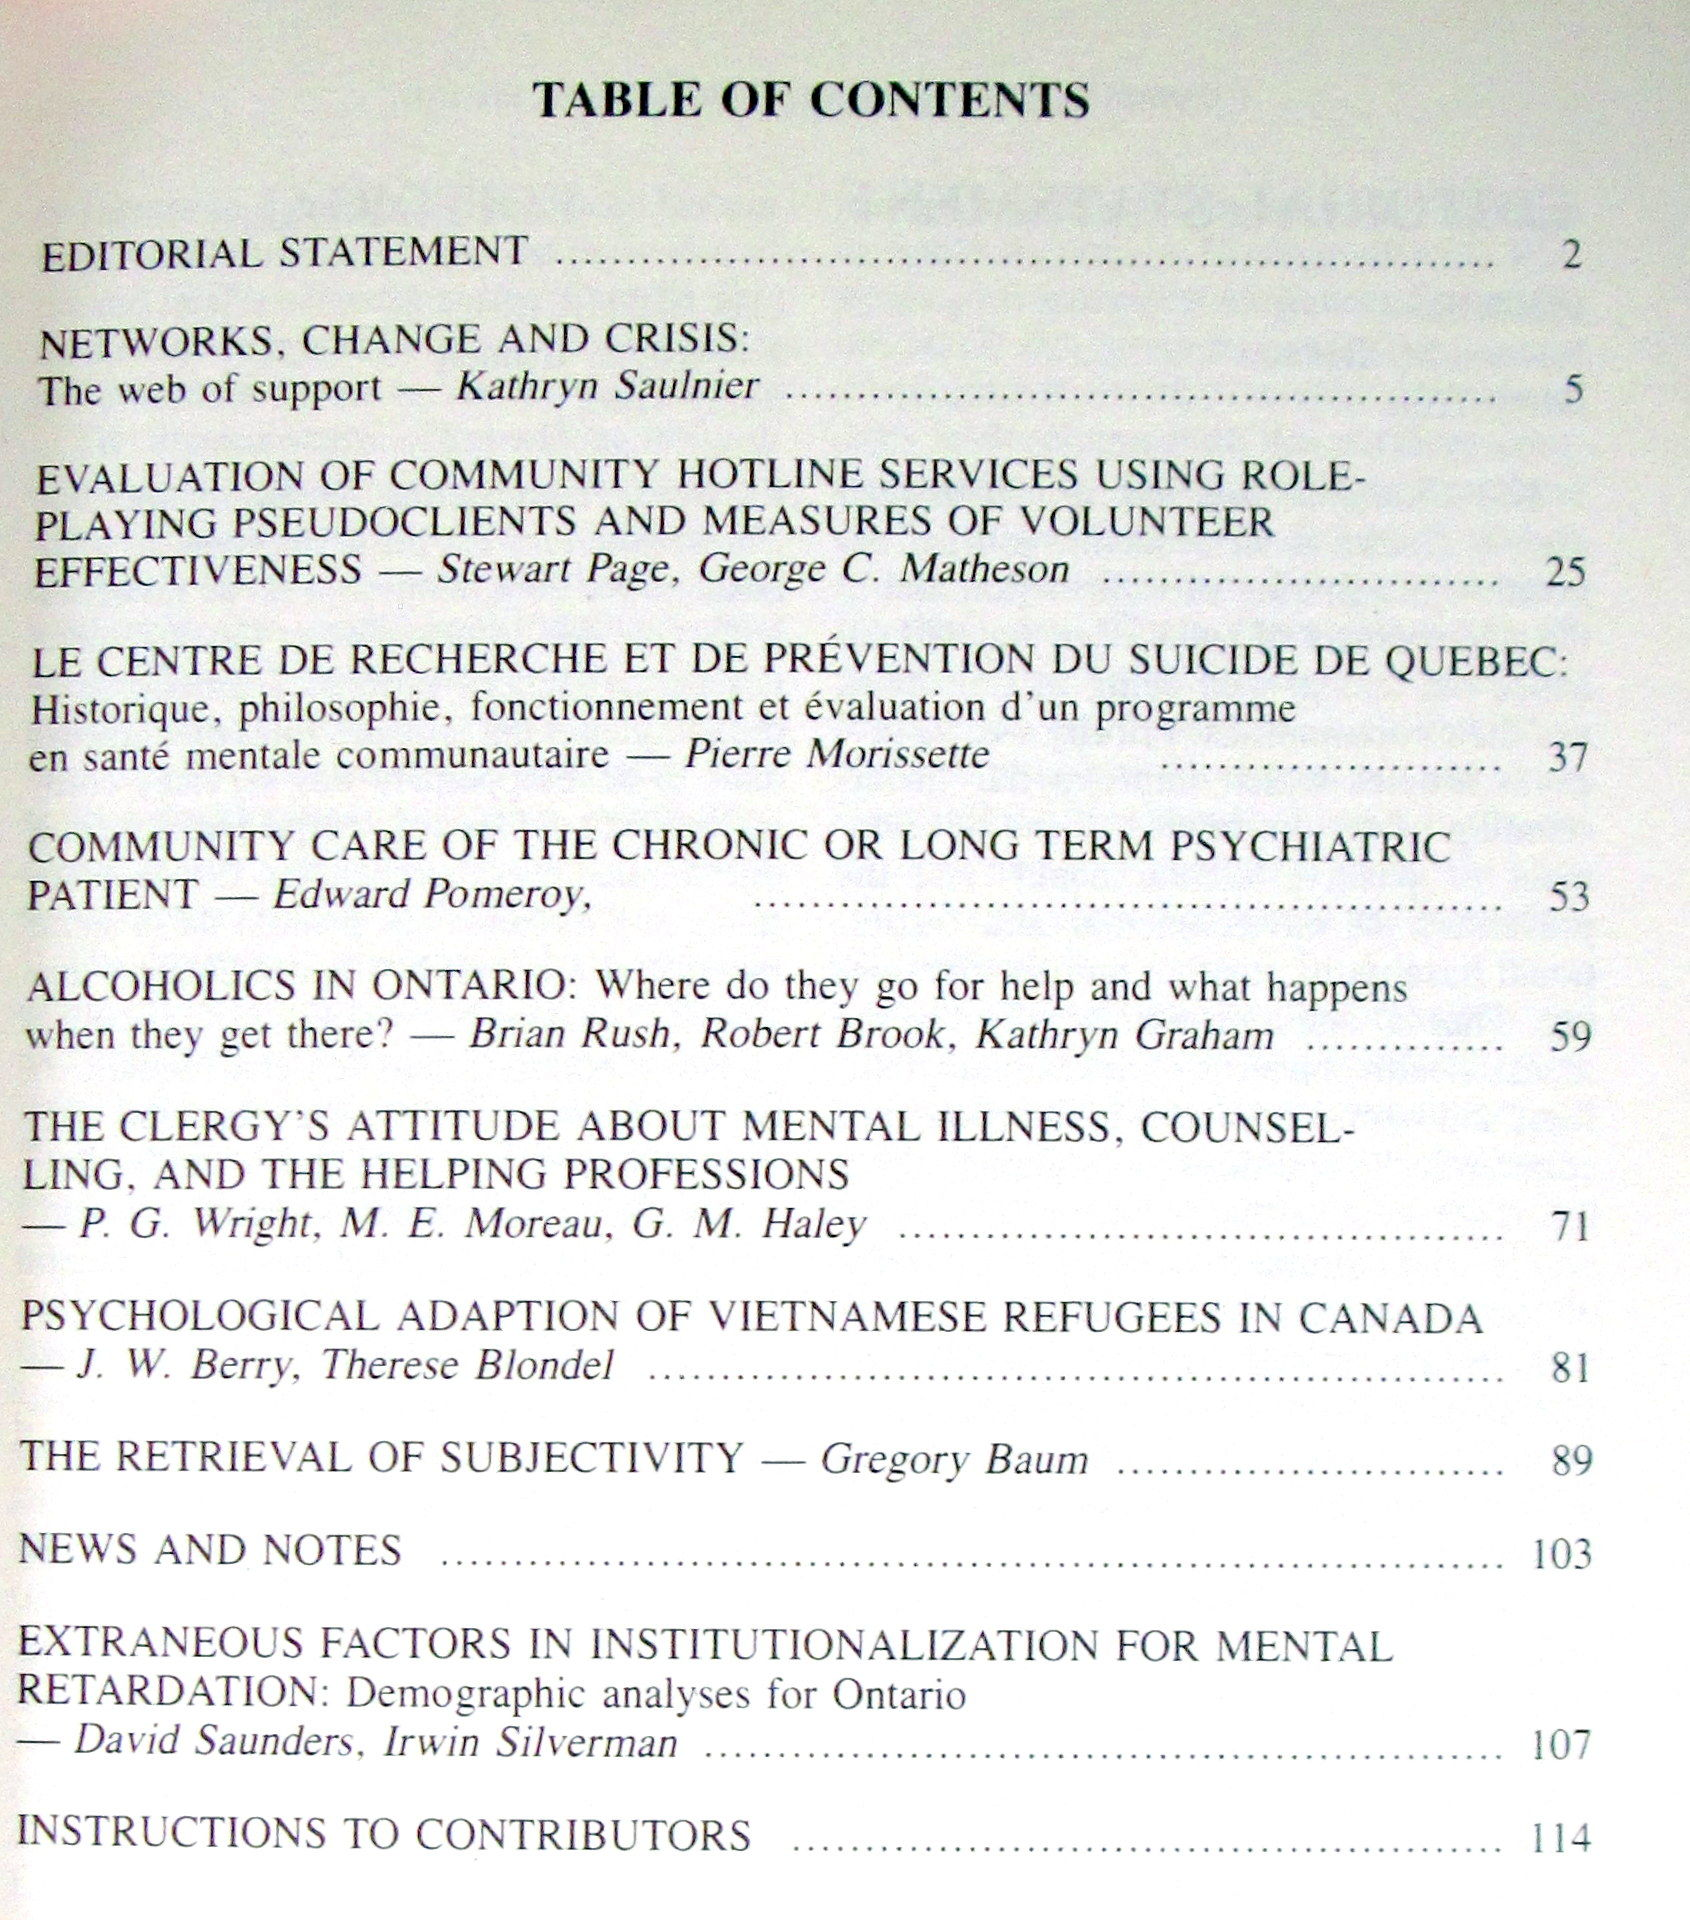 Outline research paper alcoholism image 3